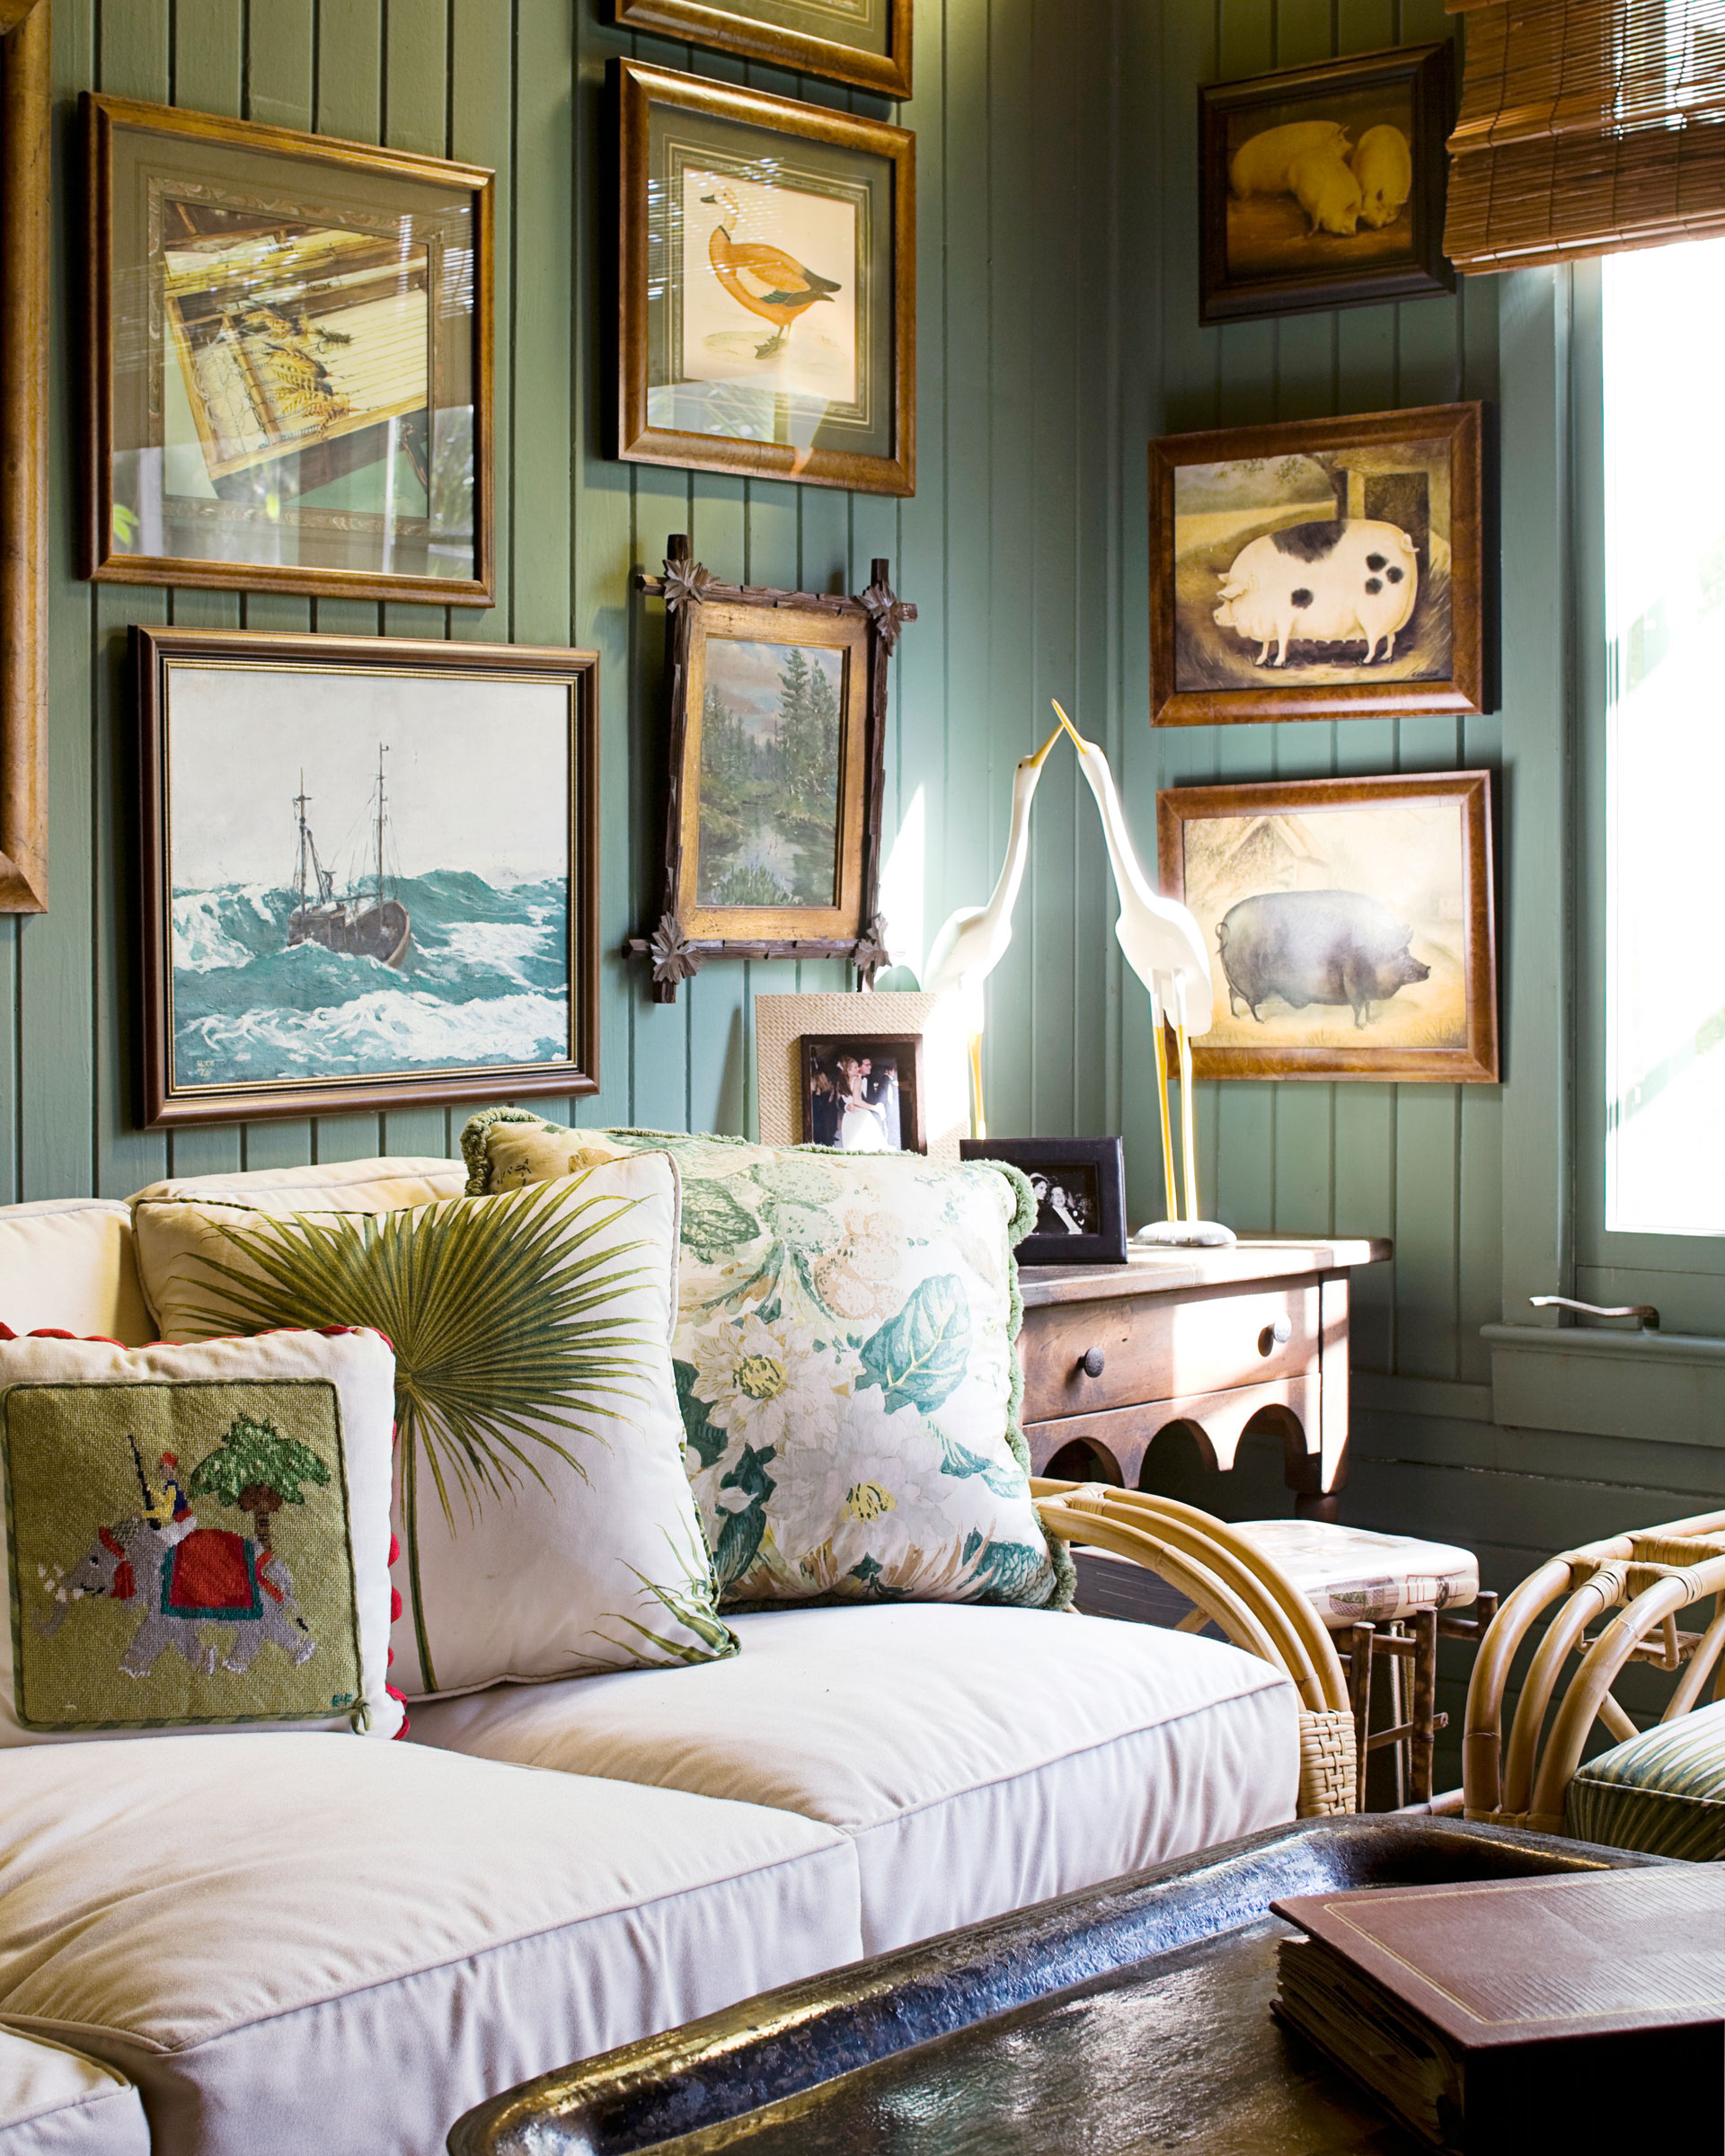 How To Hang Wall Art How To Decorate With Art